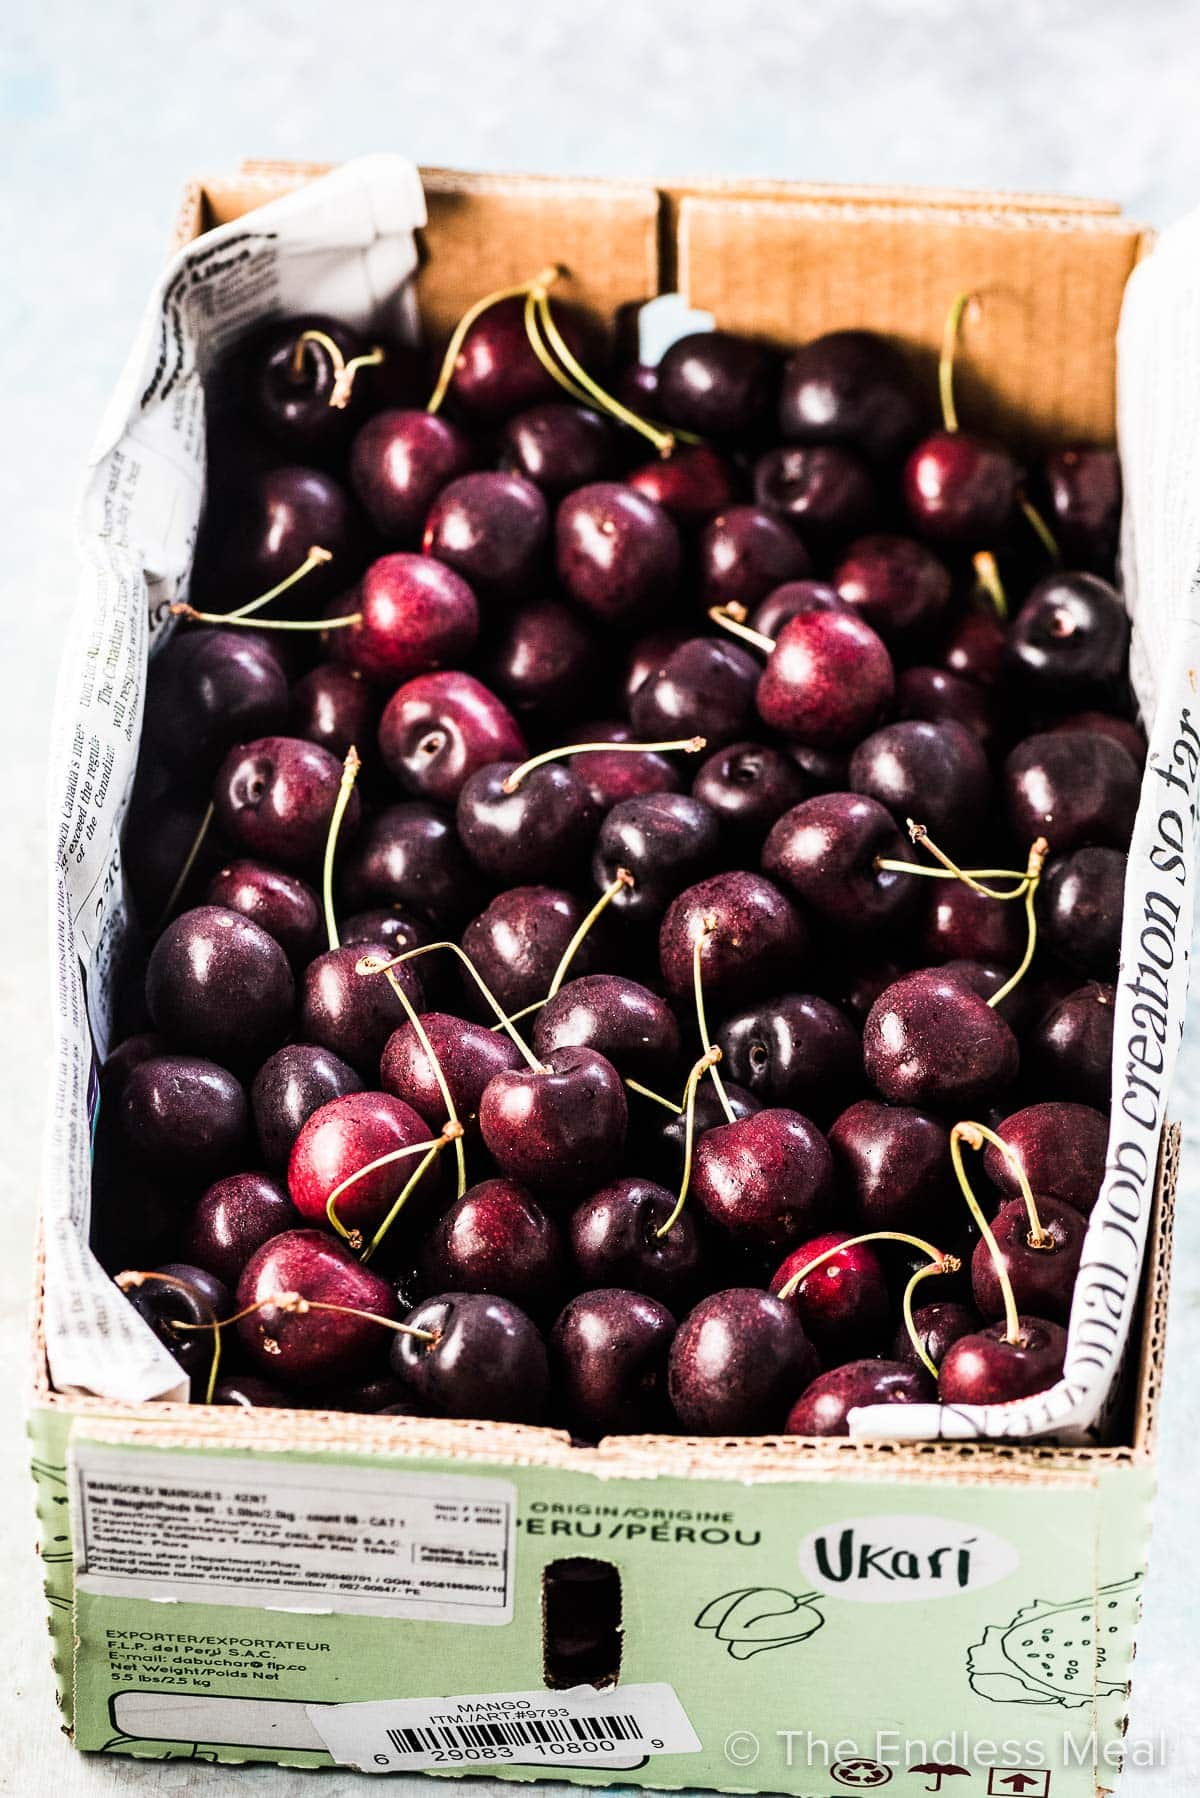 Fresh cherries in a box ready to be made into cherry compote.